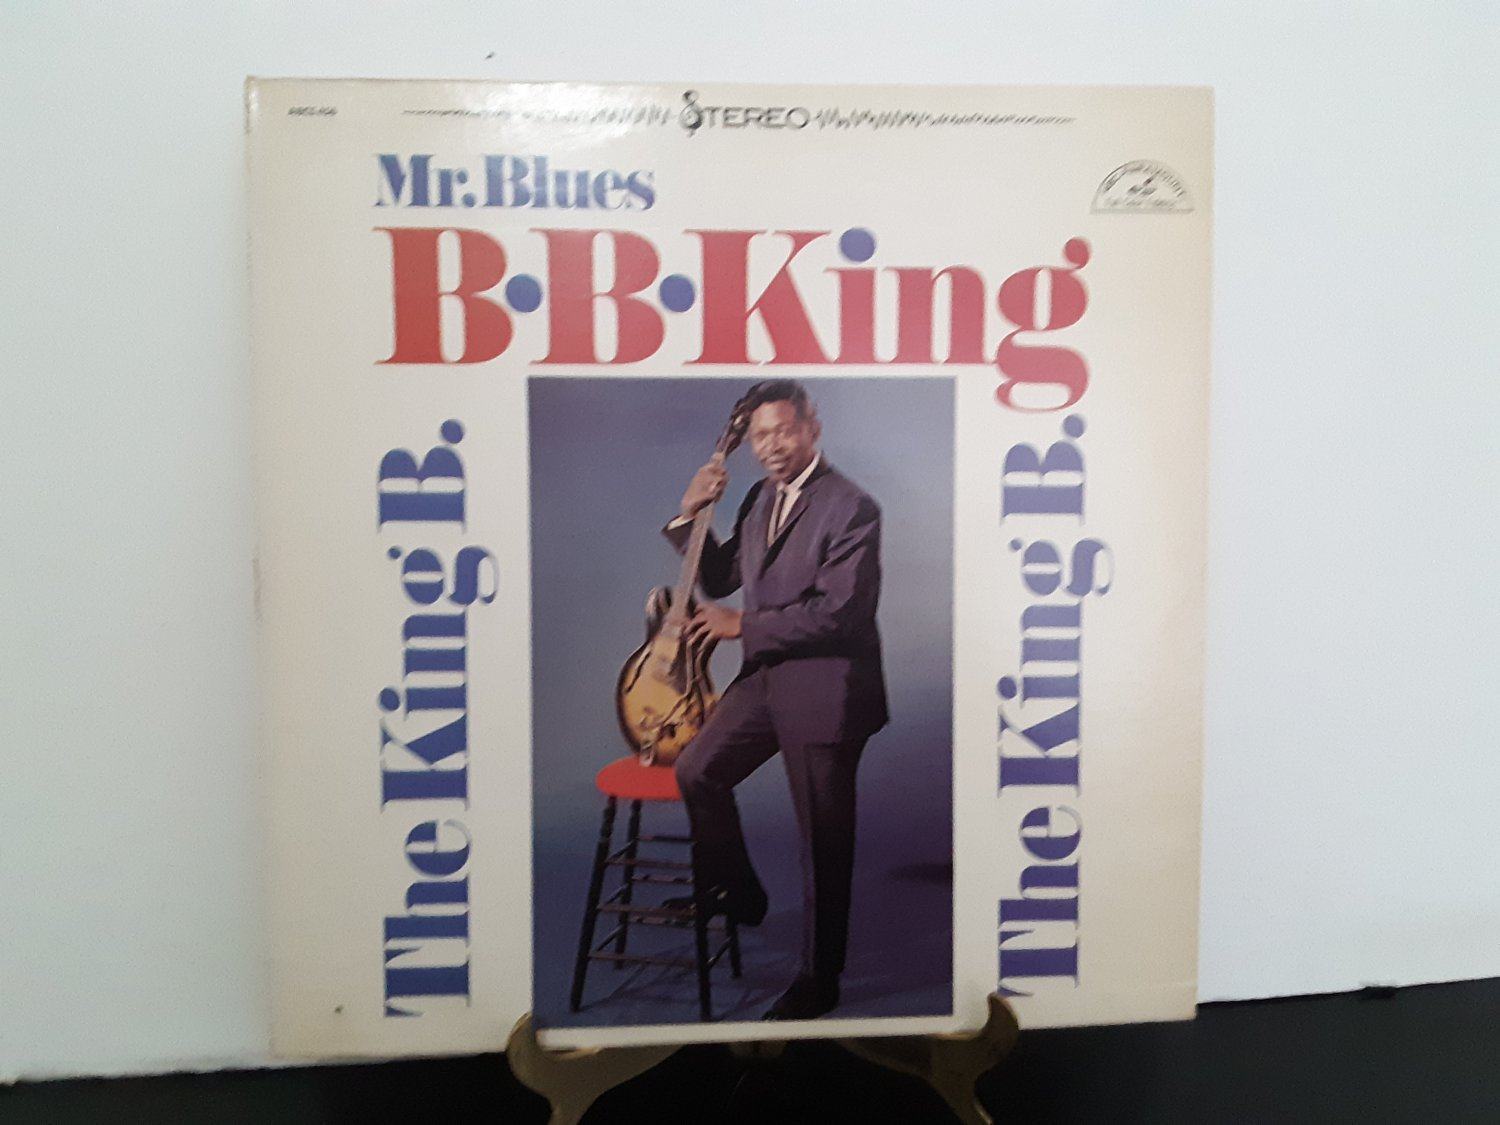 B.B. King - Mr. Blues - Circa 1963